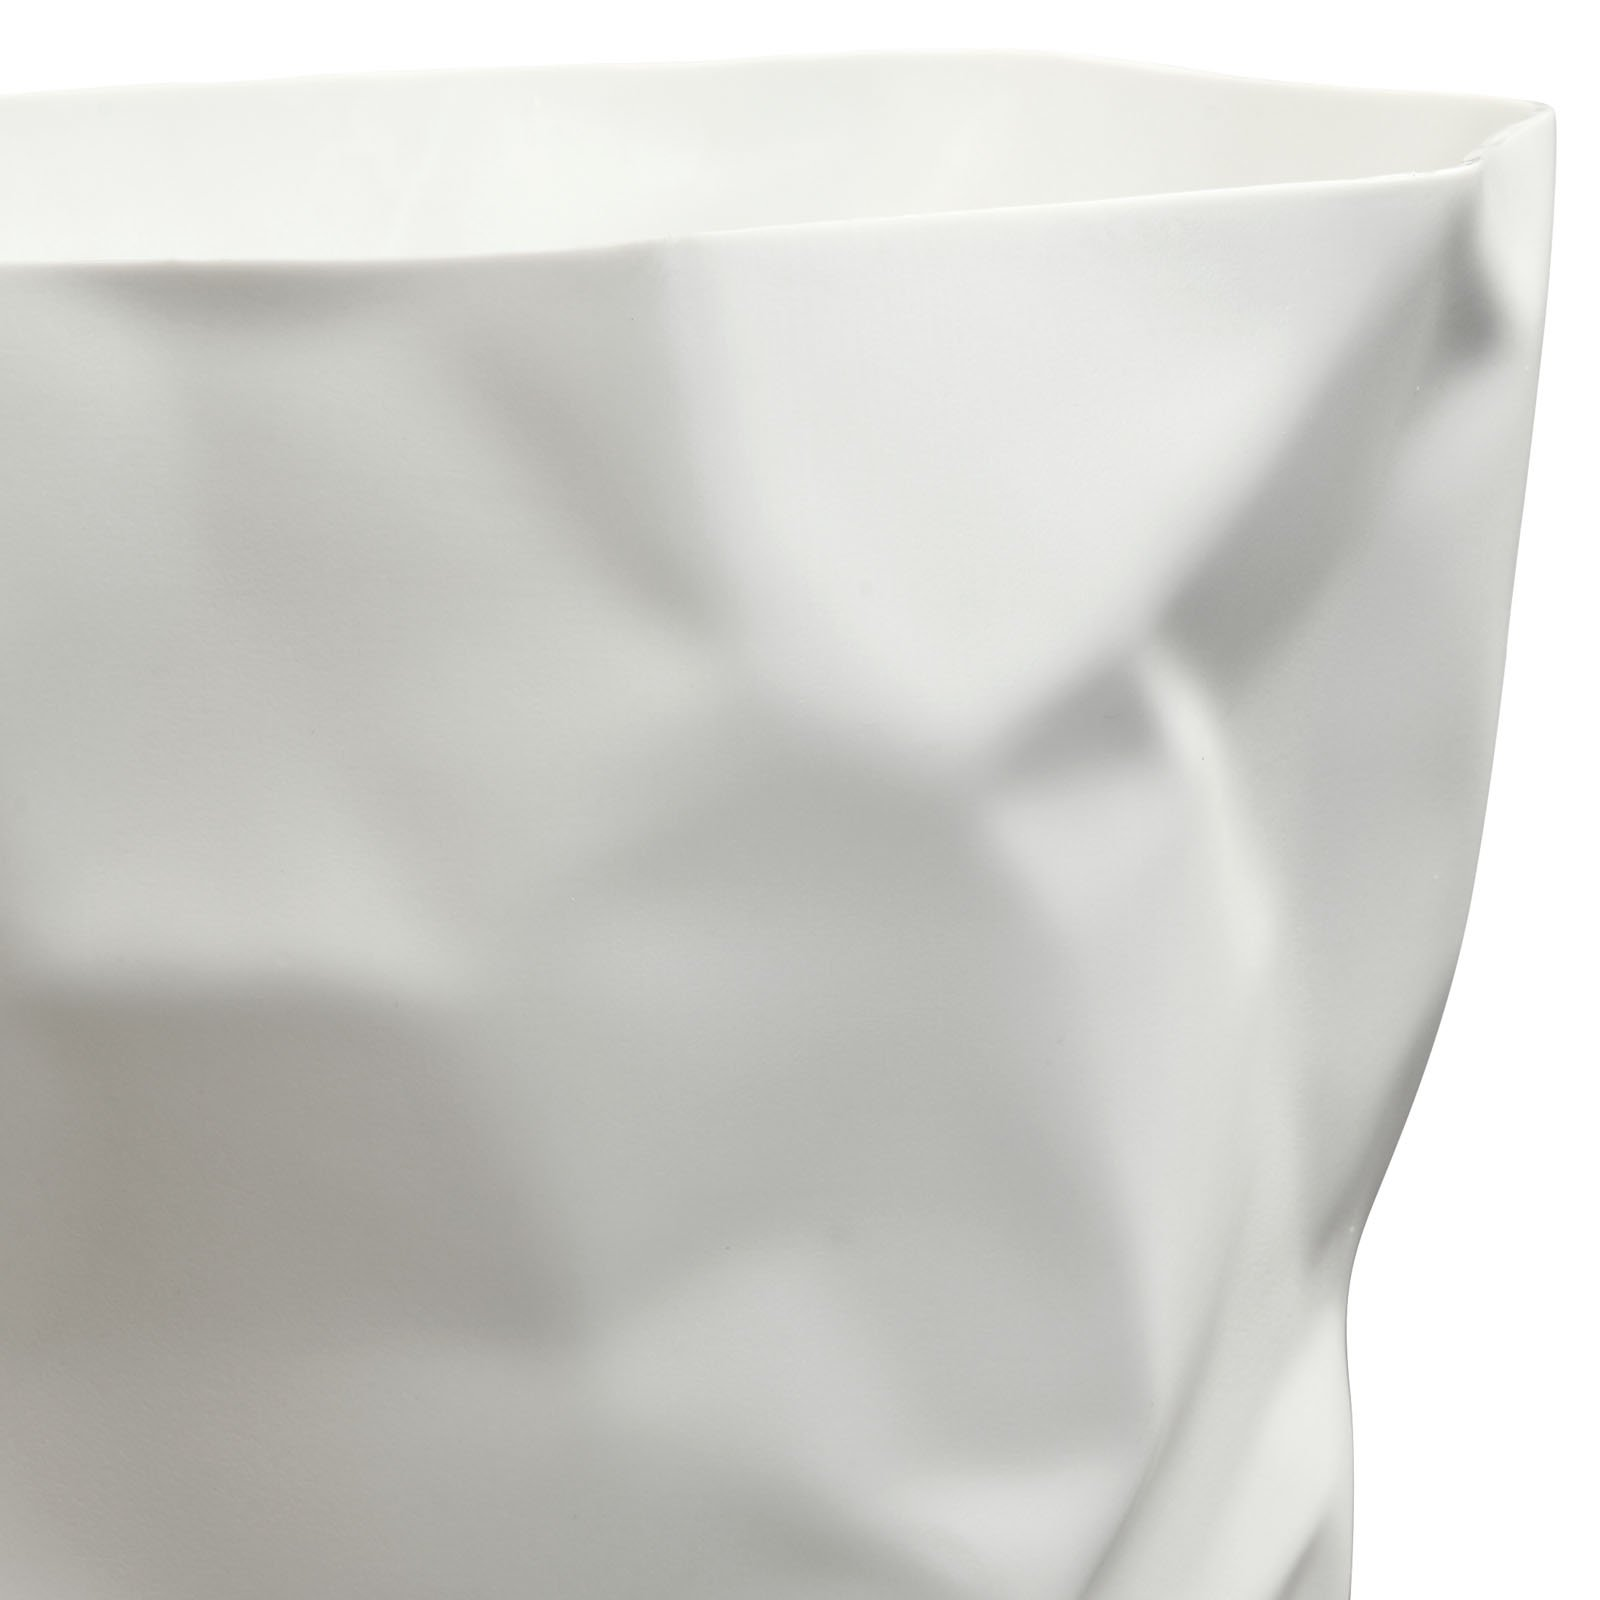 Modern Contemporary Trash Bin White by America Luxury - Accessories (Image #3)